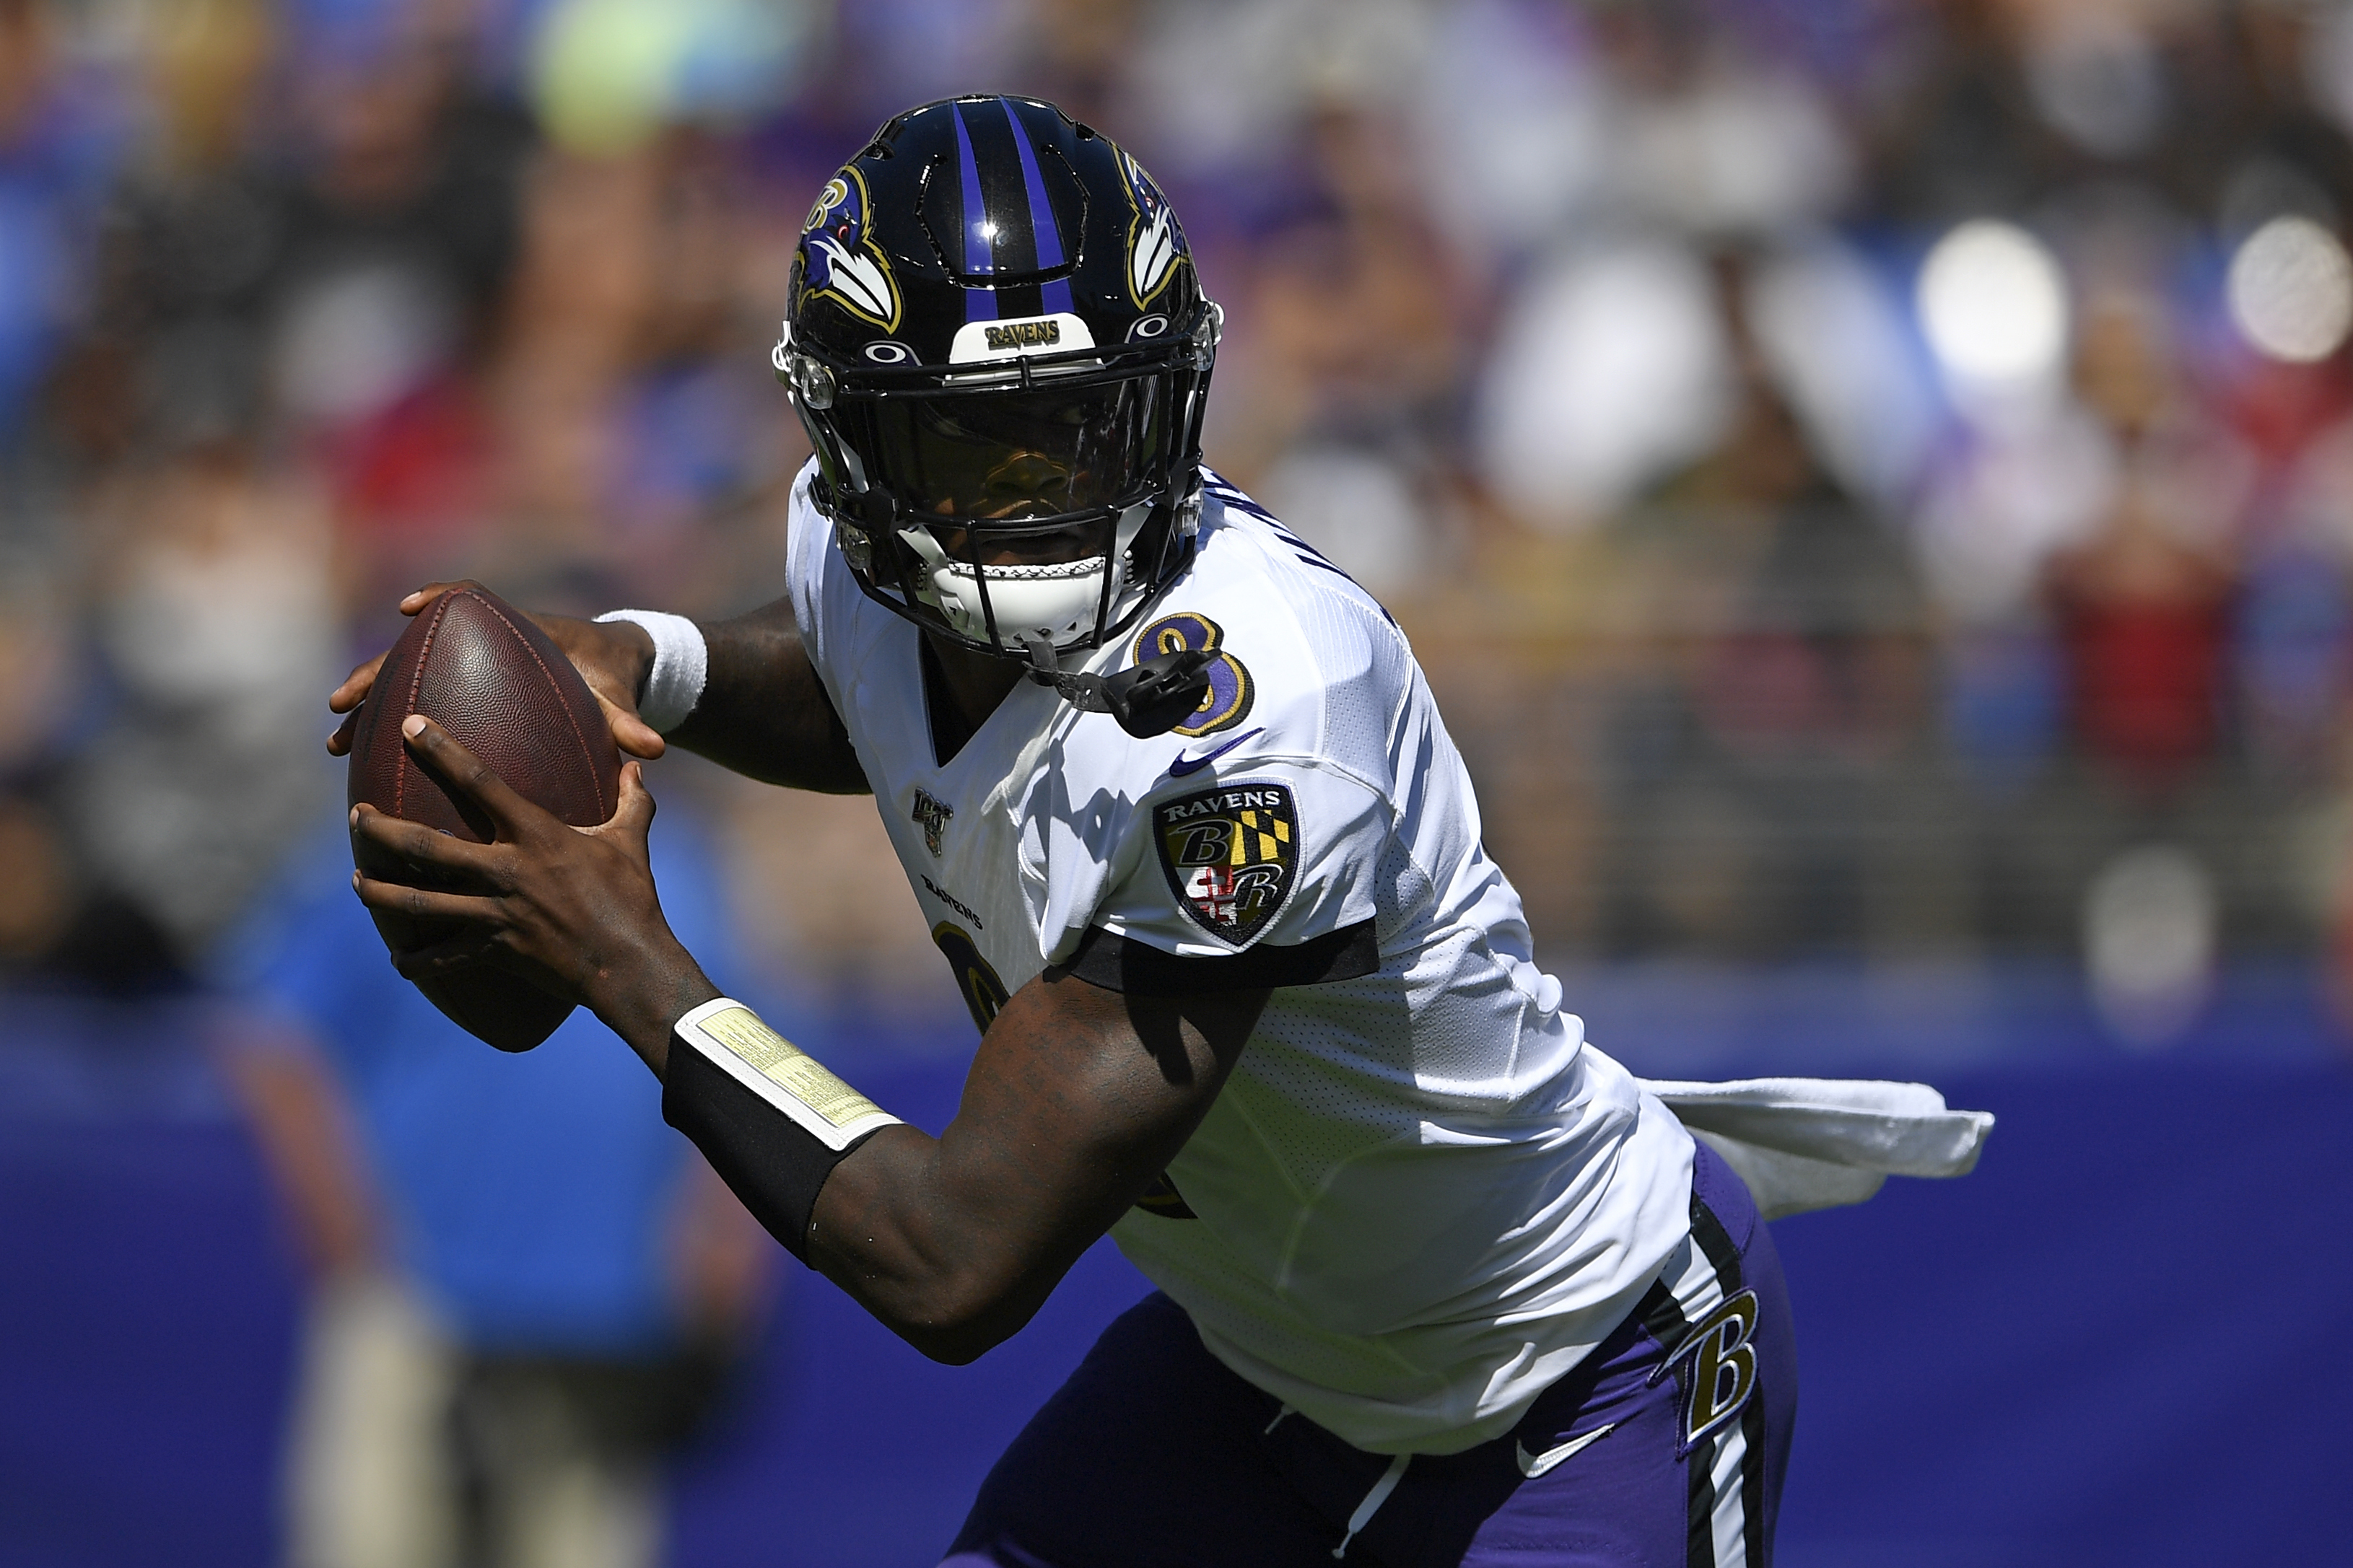 Ravens' Lamar Jackson is a budding star — and these teams will regret foolishly passing on him